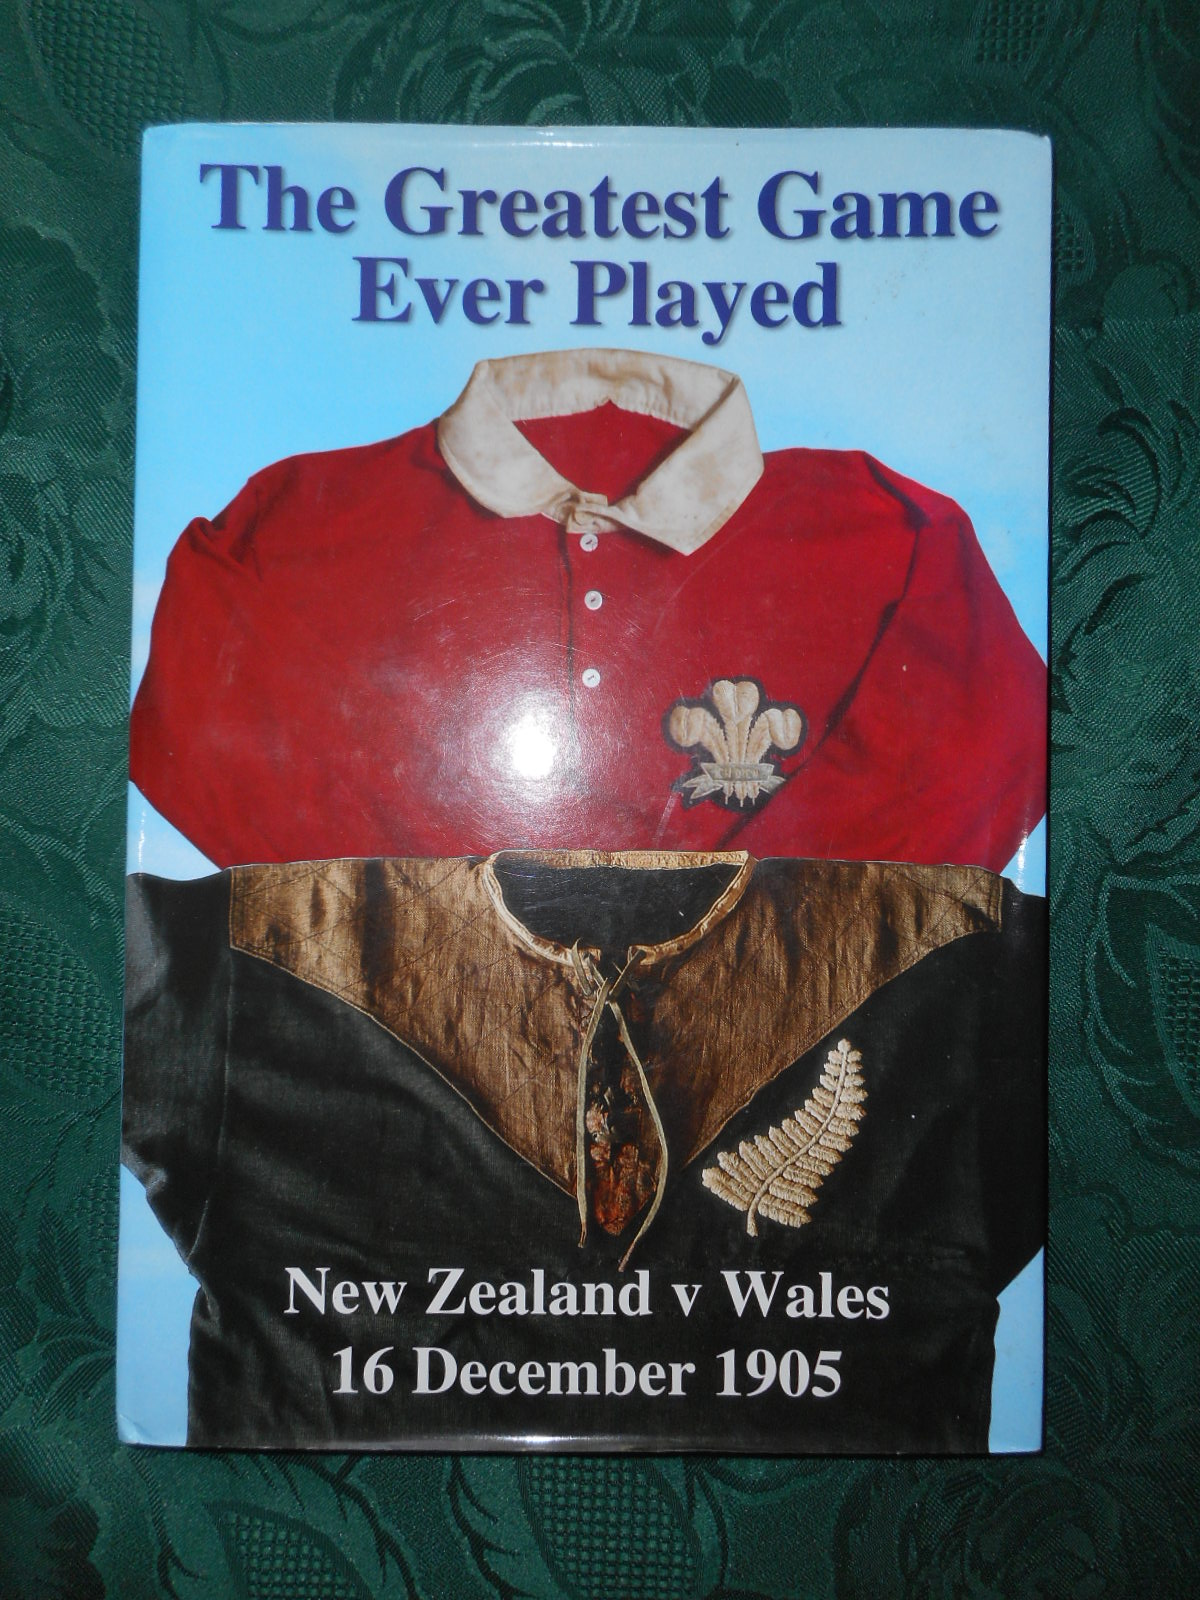 Image for The Greatest Game Ever Played . New Zealand v Wales 16 December 1905 SIGNED LIMITED Edition of 500 Copies Only